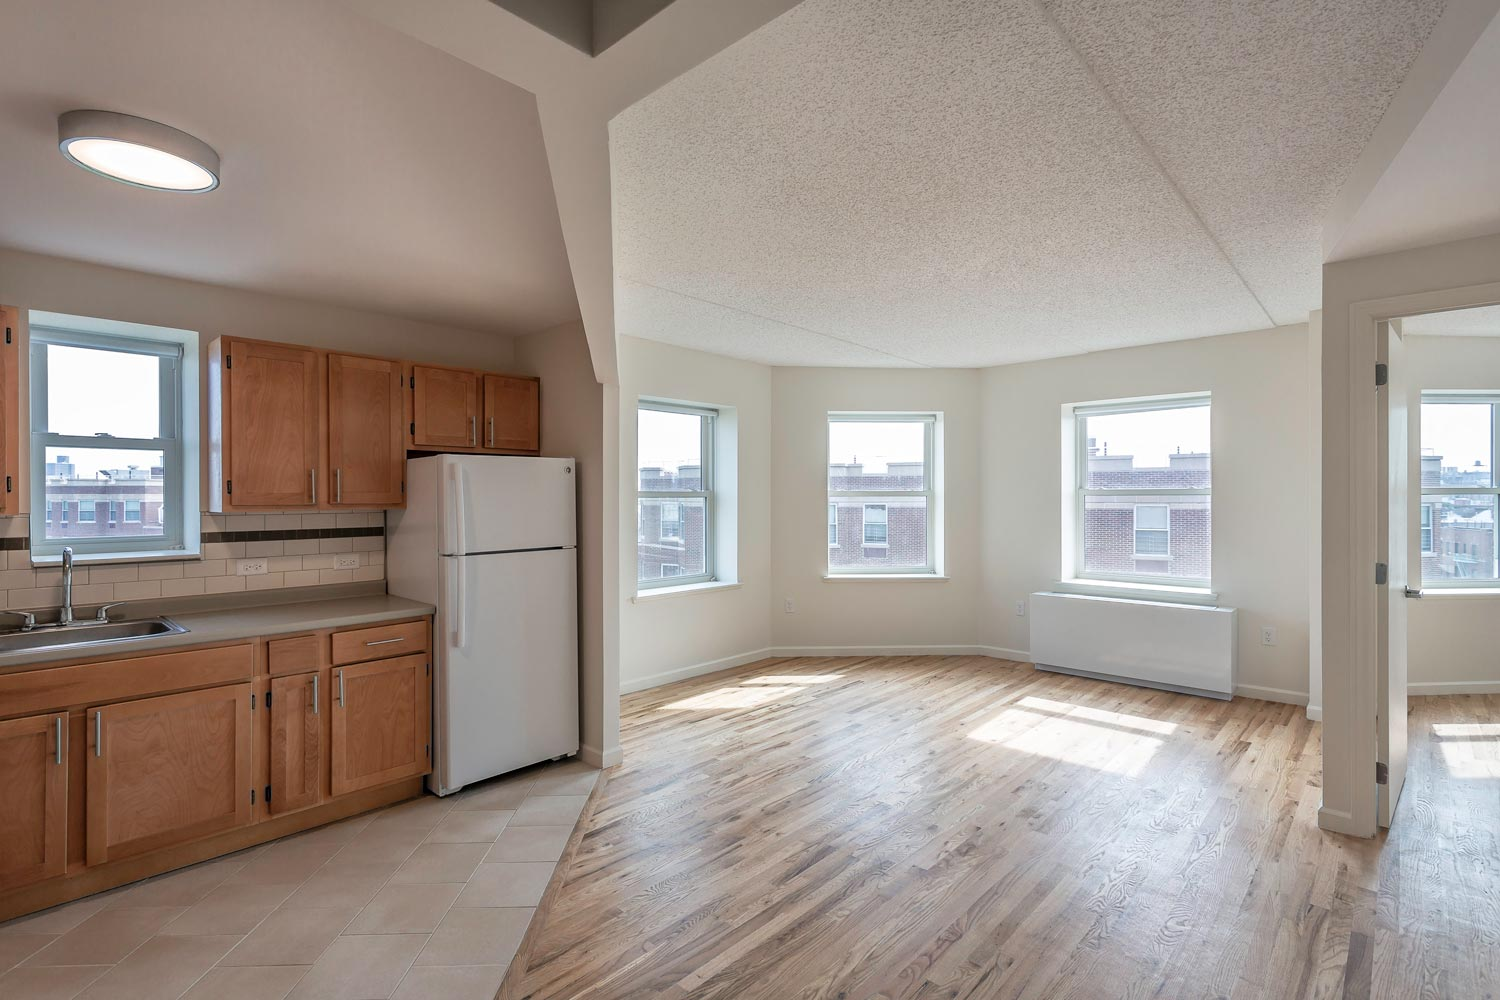 One-bedroom units with bay windows and open living-kitchens in the new construction.